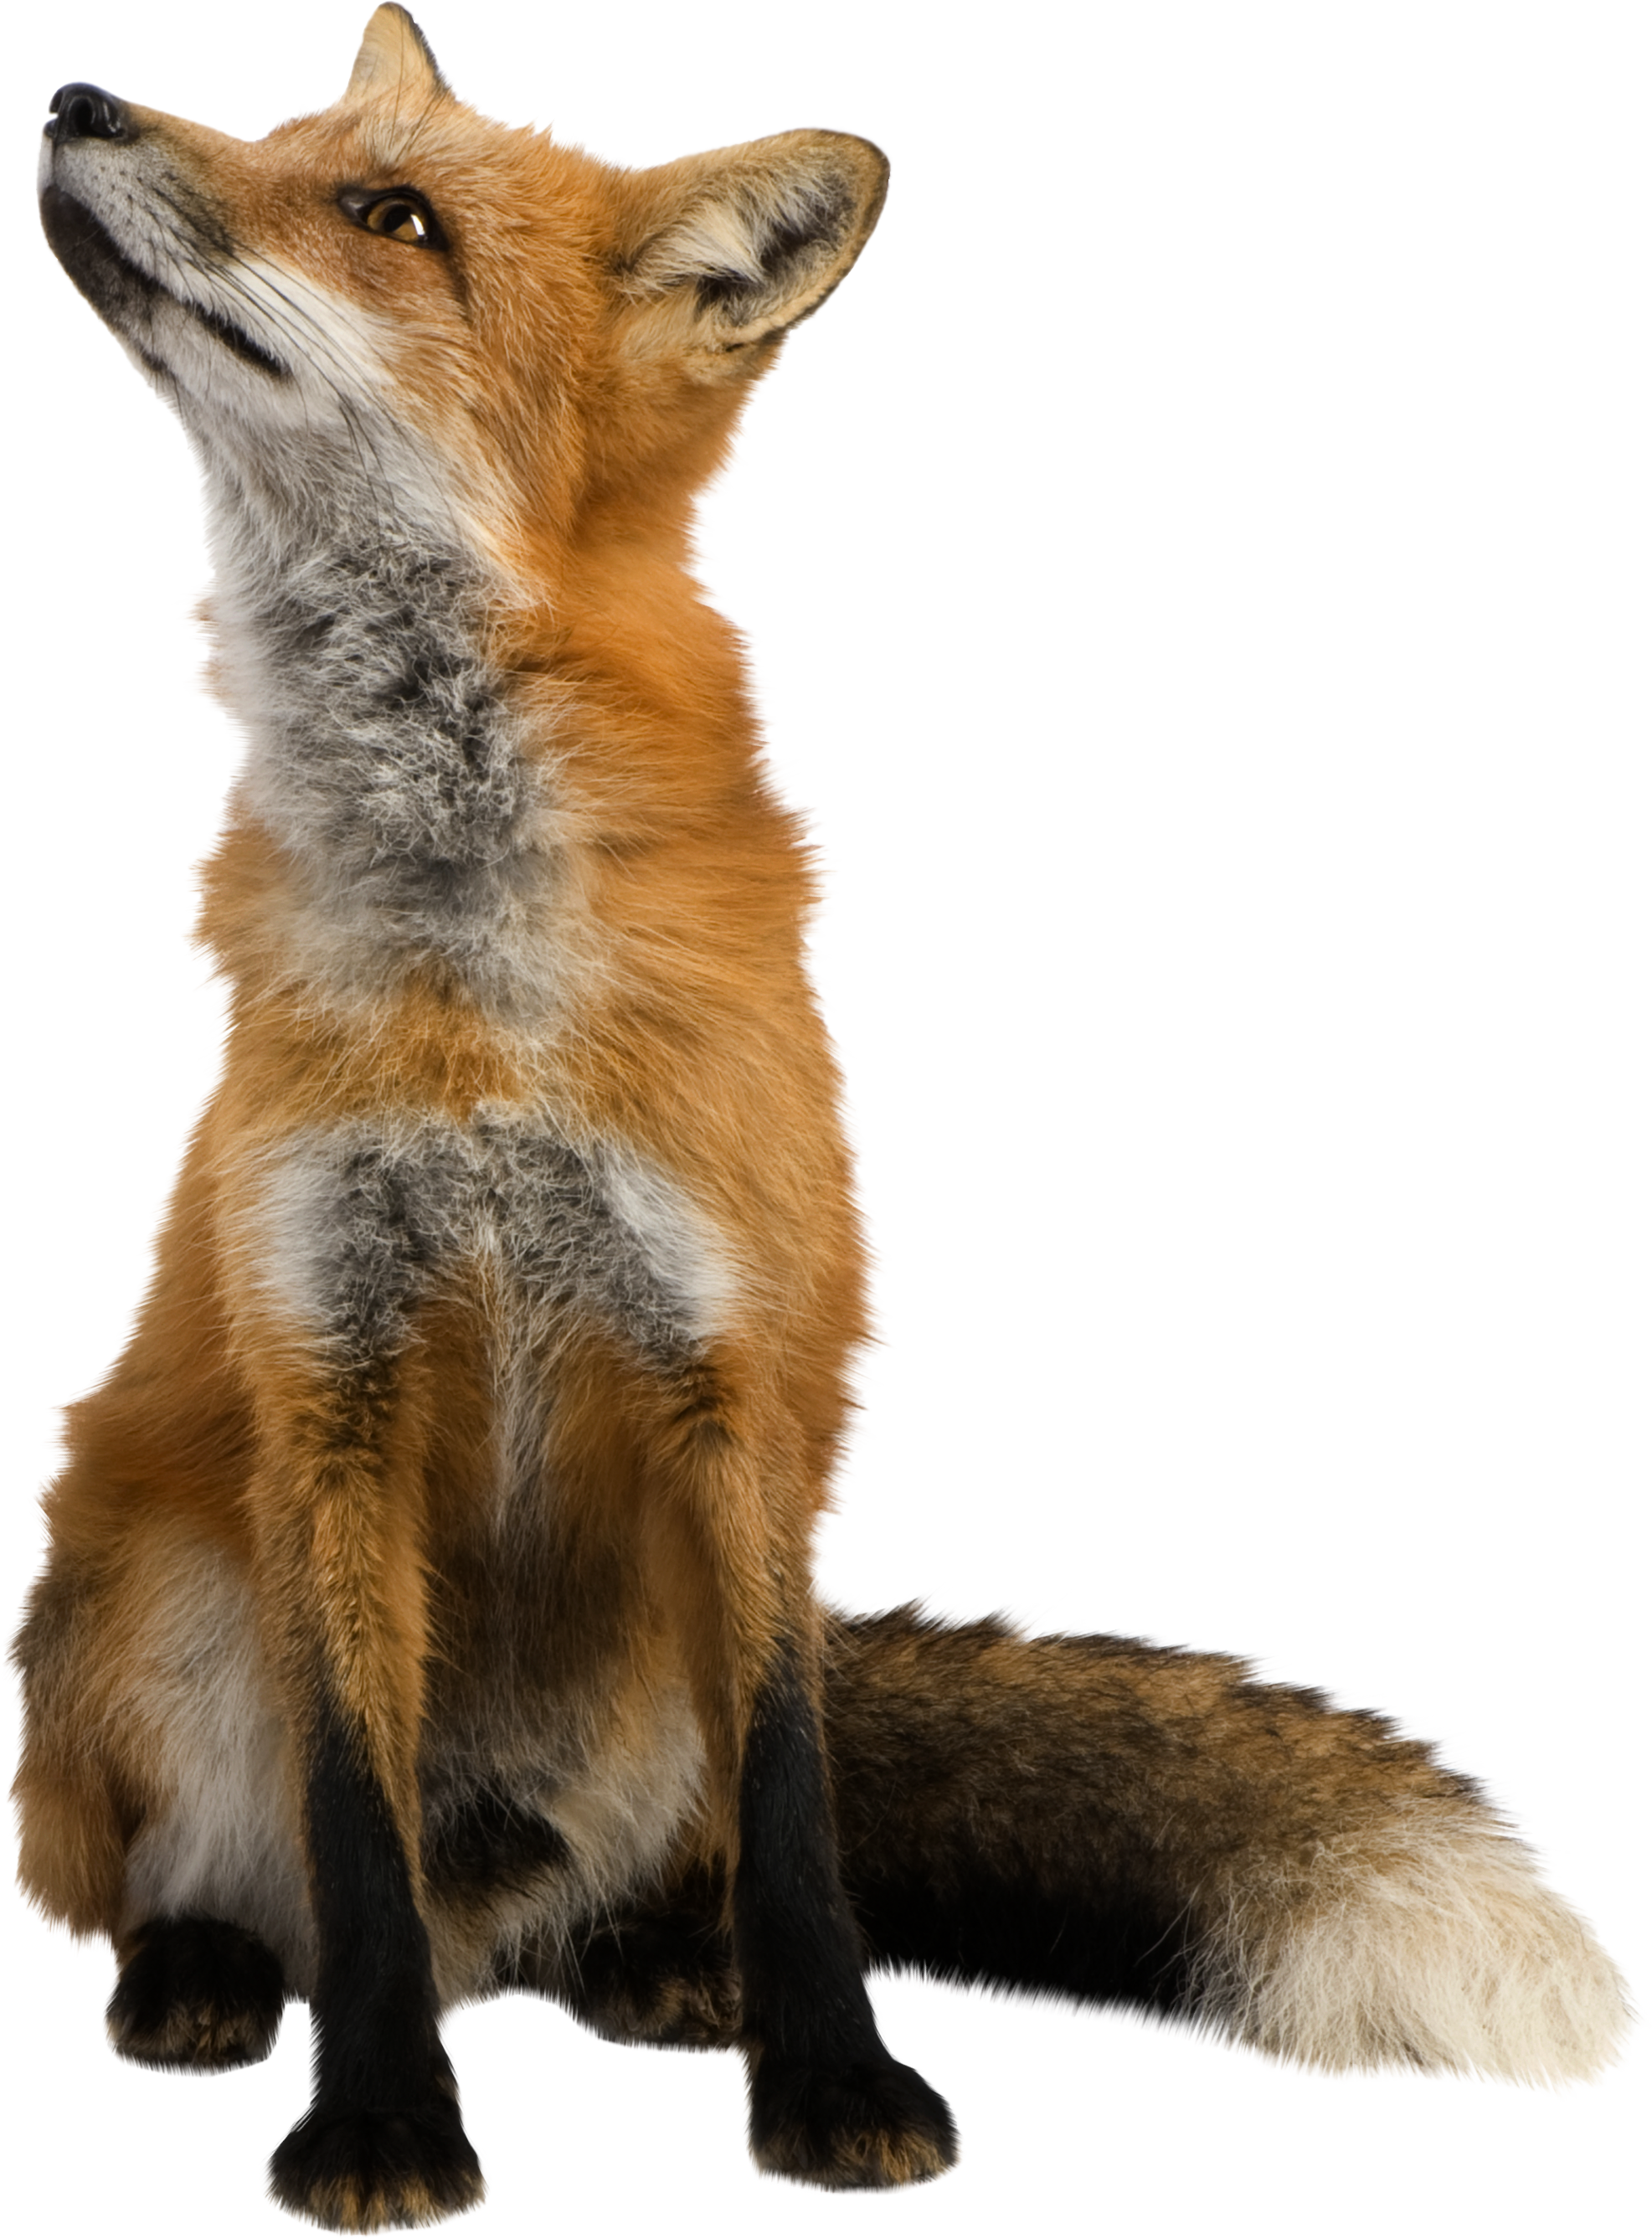 fox png image, free download picture | Fotomontagen | Pinterest ...